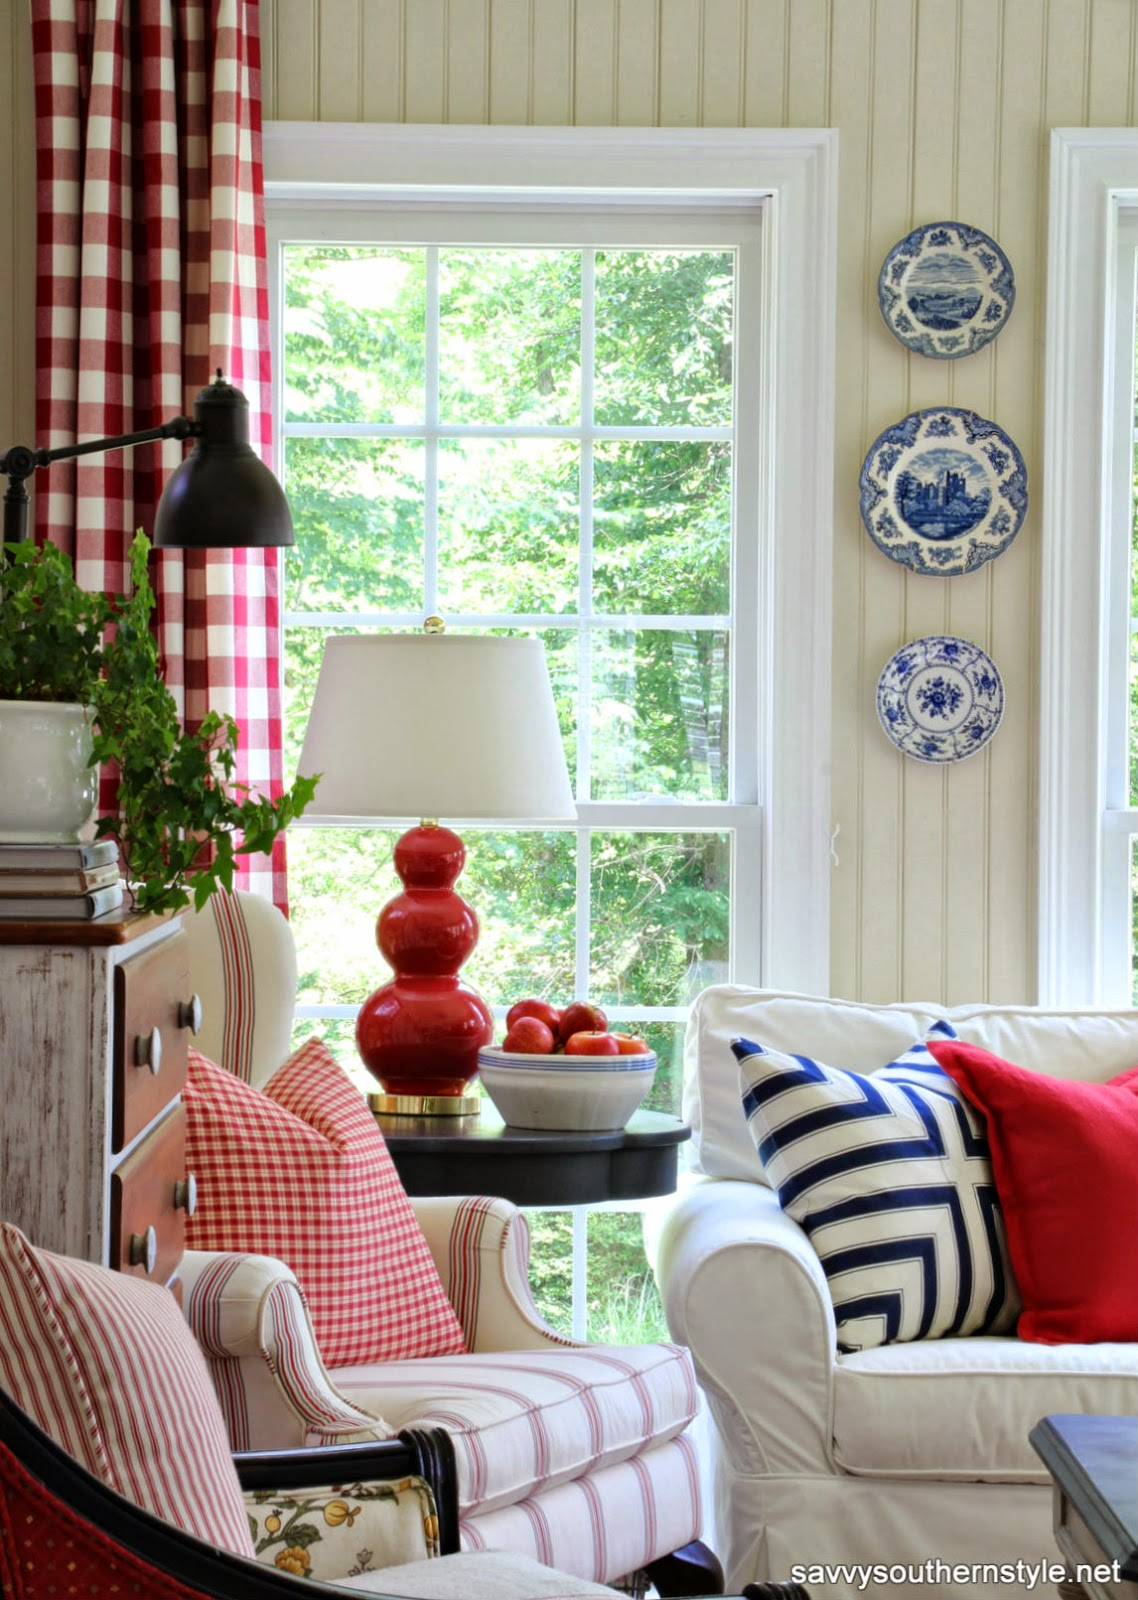 Savvy southern style stars and stripes in the sun room for Red white and blue living room ideas